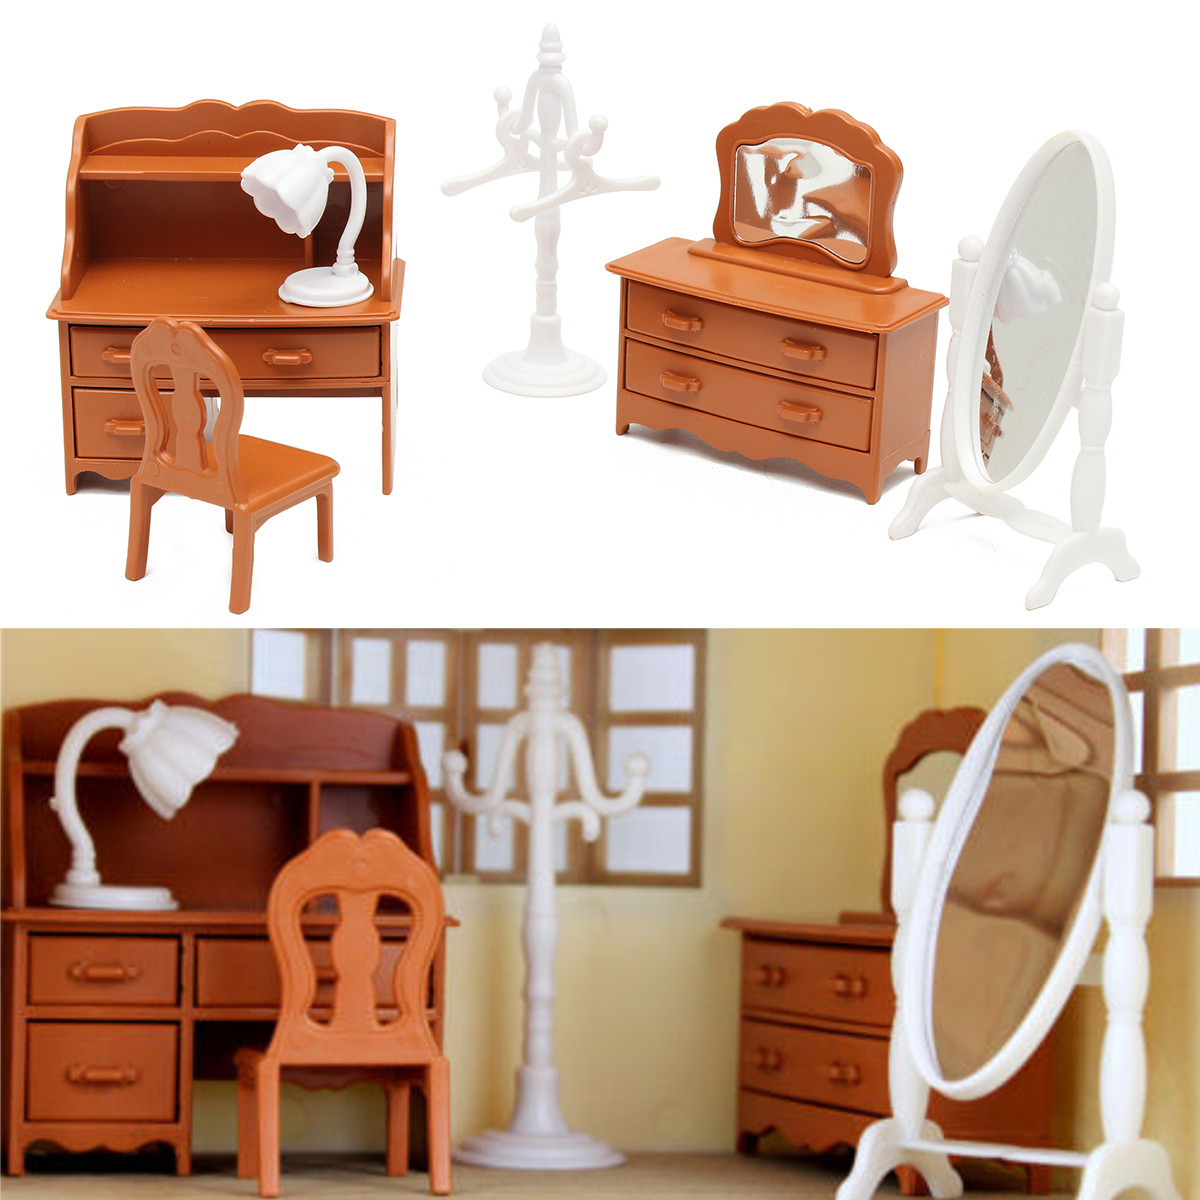 Family Dollhouse Living Room Miniature Plastic Furniture Set Dollhouse Decoration Accessories Kids Children Girls Boys Toy Christmas Gifts